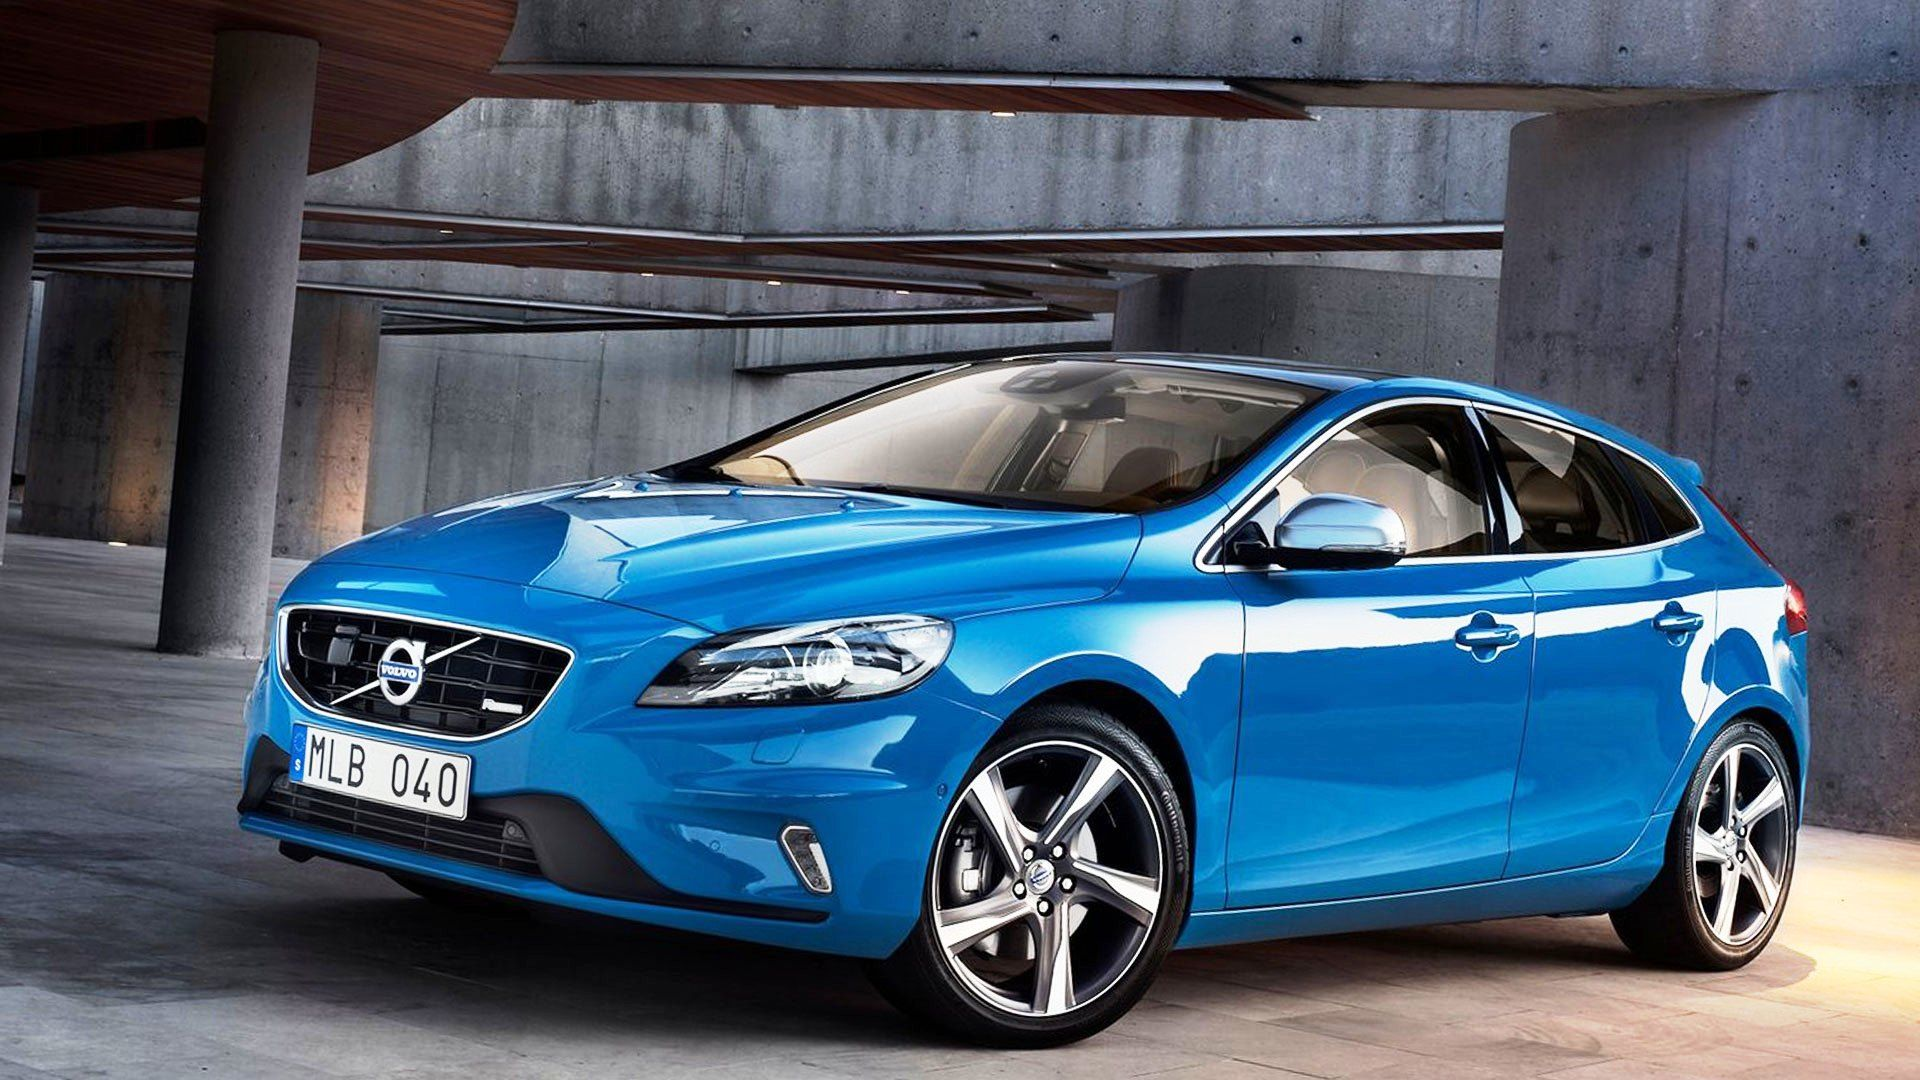 VolvoV40RDesignPerformanceWallpaper.jpg (1920×1080